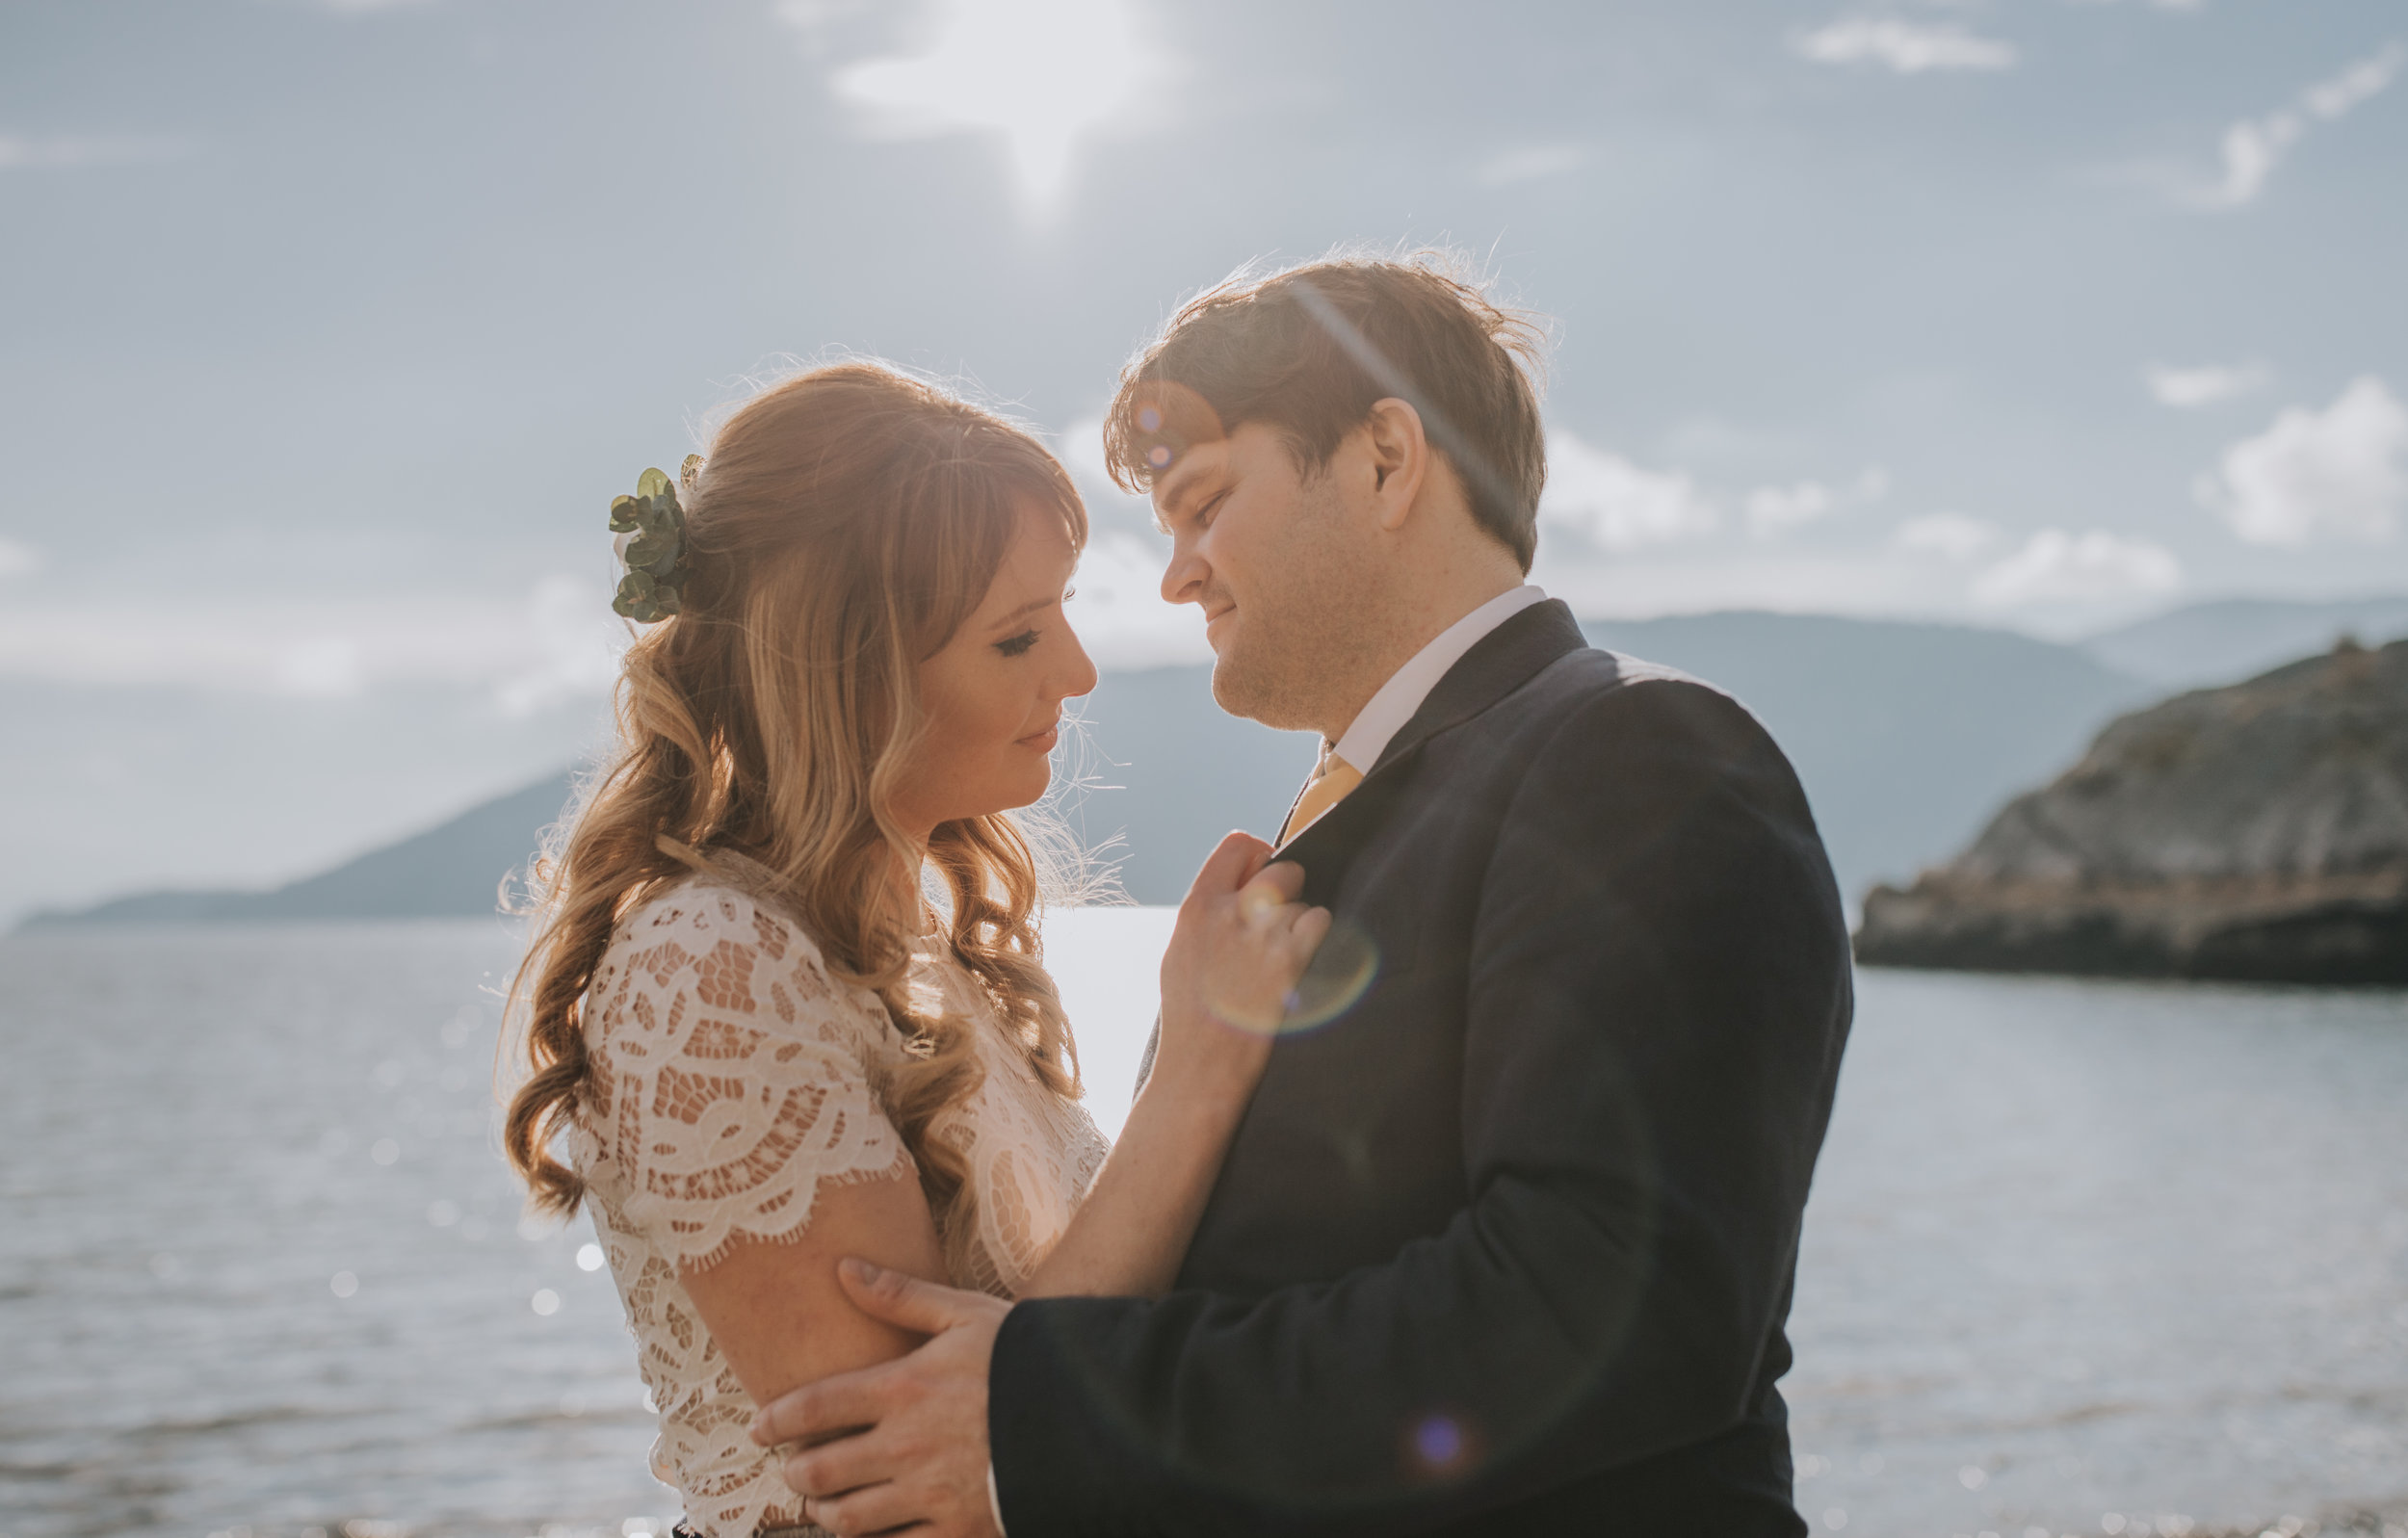 Whytecliff Park Engagement Photos - Vancouver Wedding Photographer - Jennifer Picard Photography047.JPG